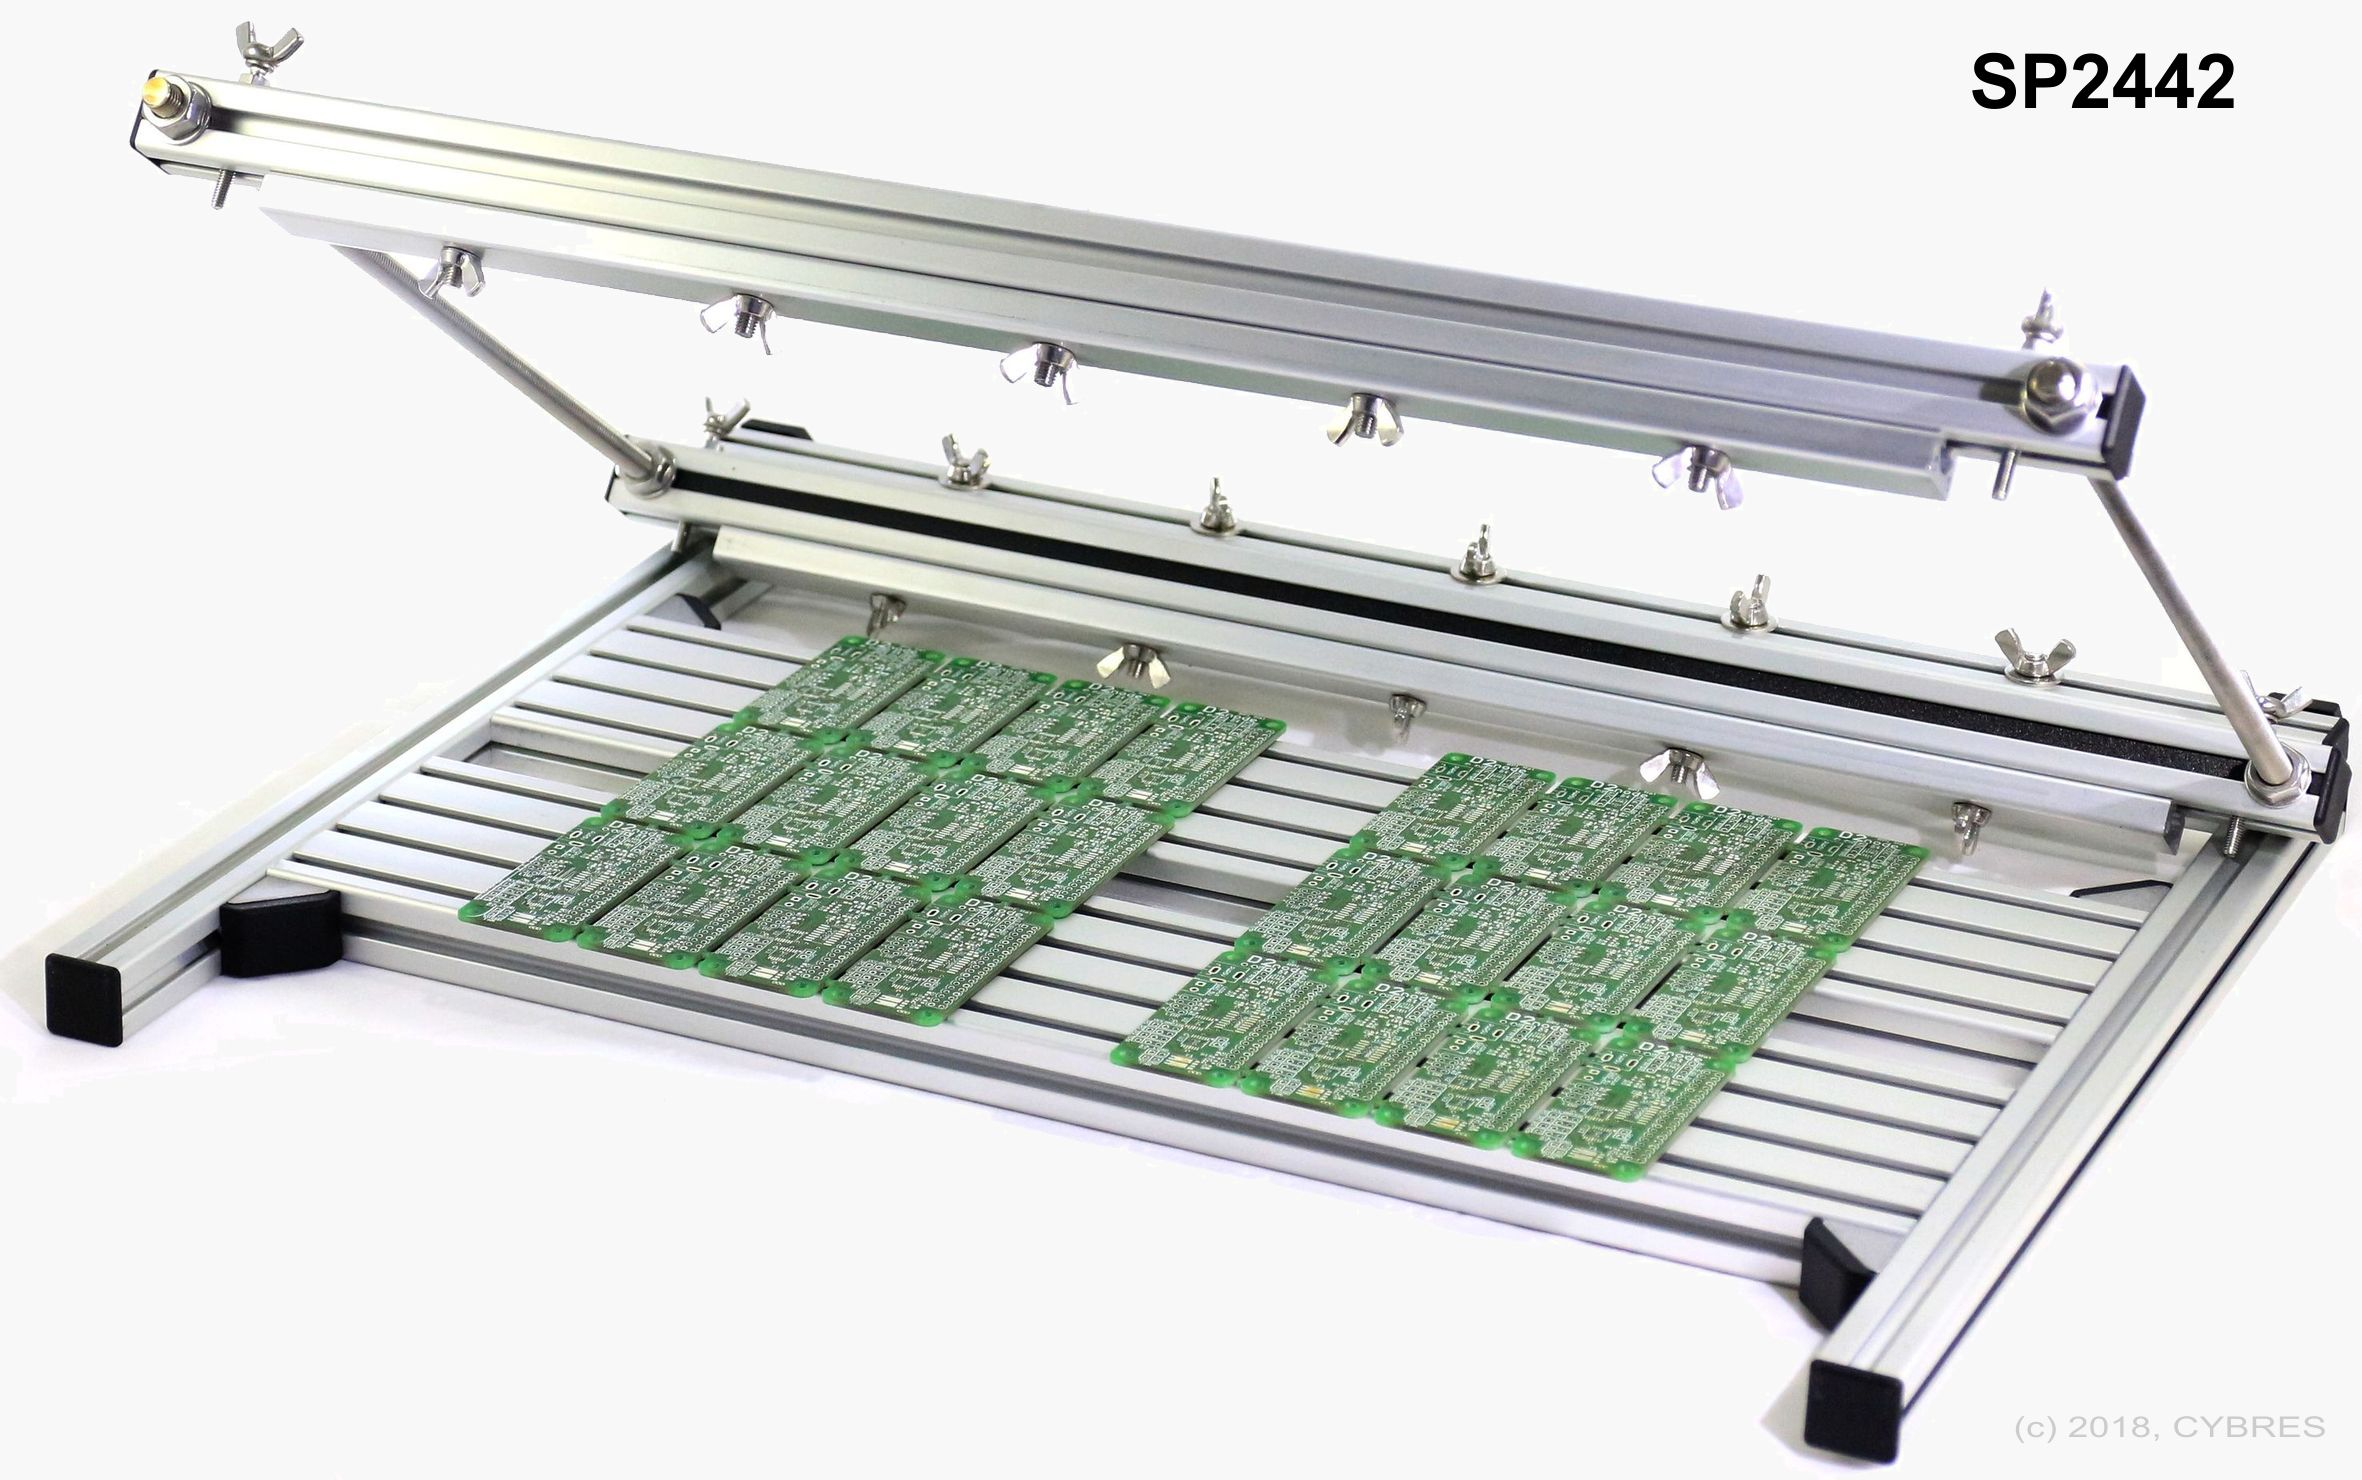 Manual Stencil Printer CYBRES SP2421 & SP2442 | Cybertronica Research